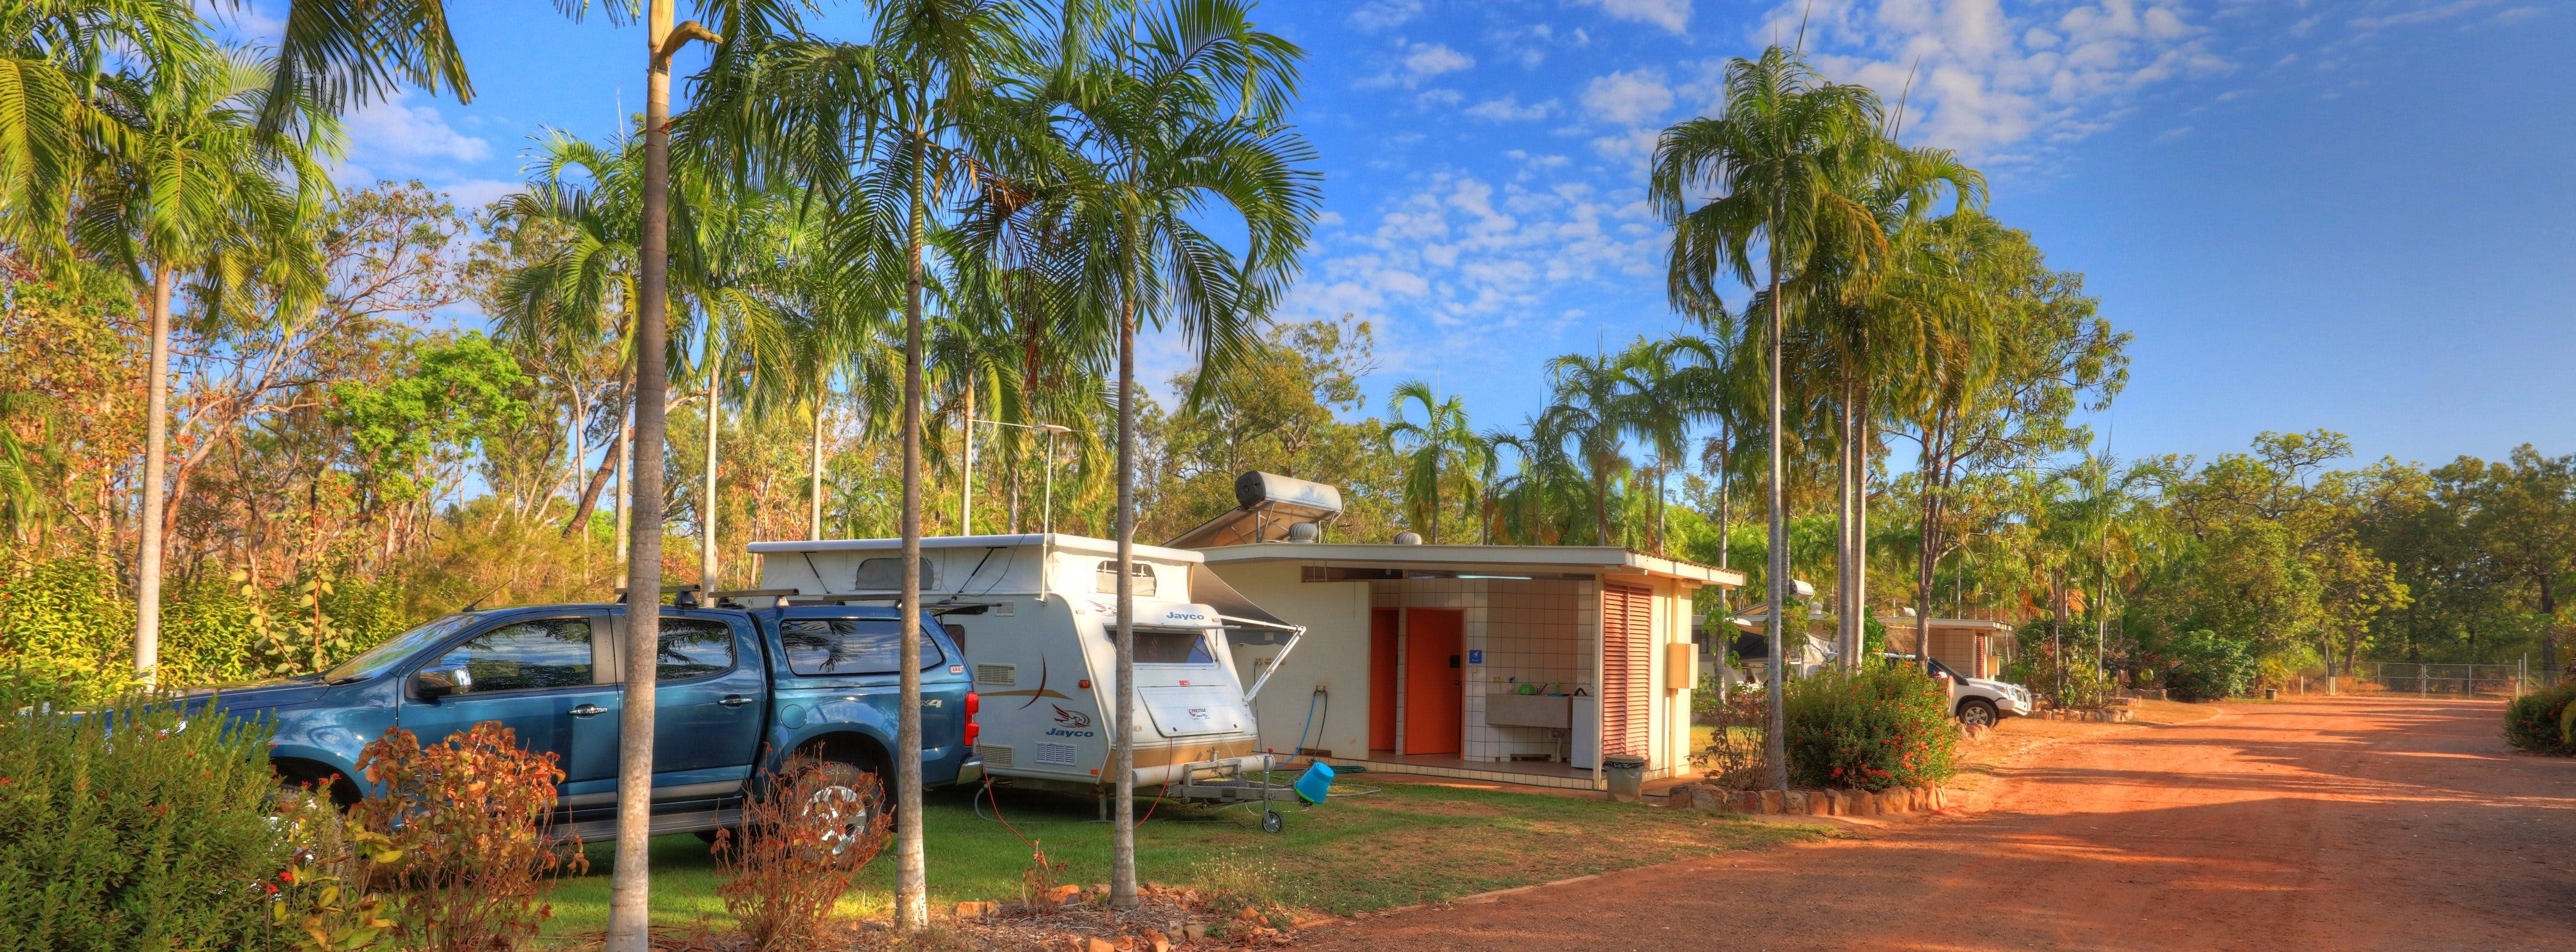 Batchelor Holiday Park - Accommodation Whitsundays